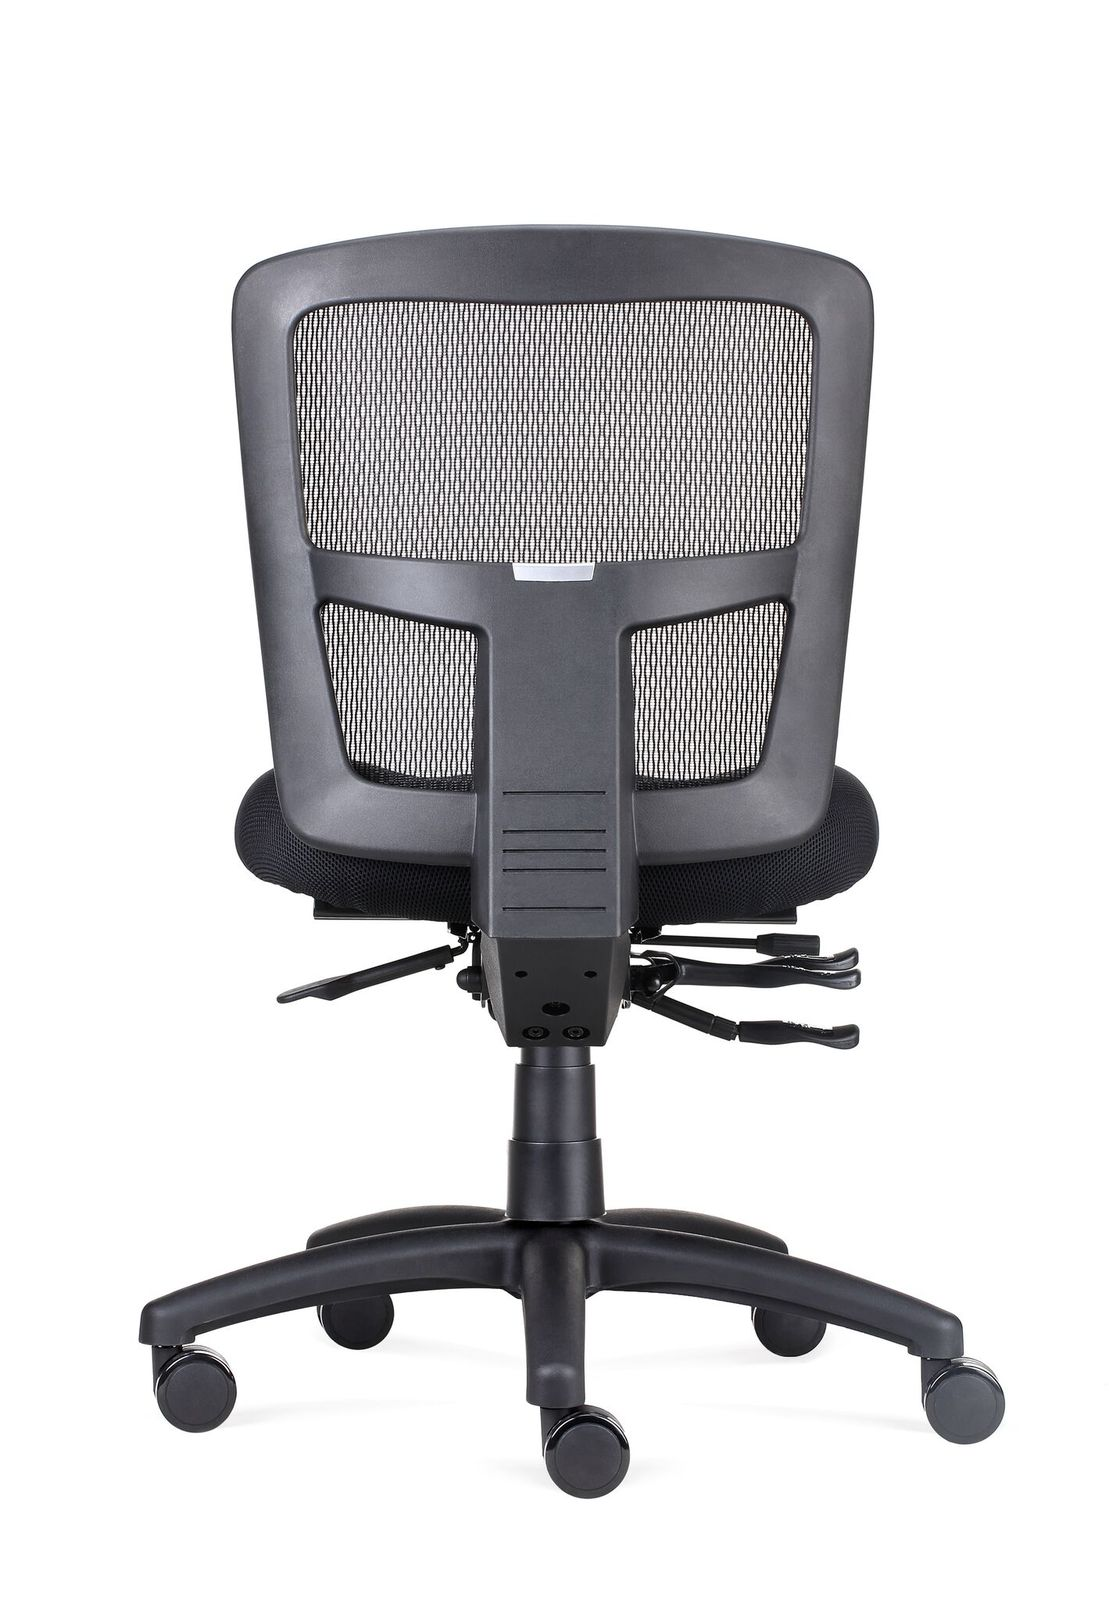 Ergonomic Mesh Chair Ergo Black Promesh Mesh Back Task Chair Office Stock